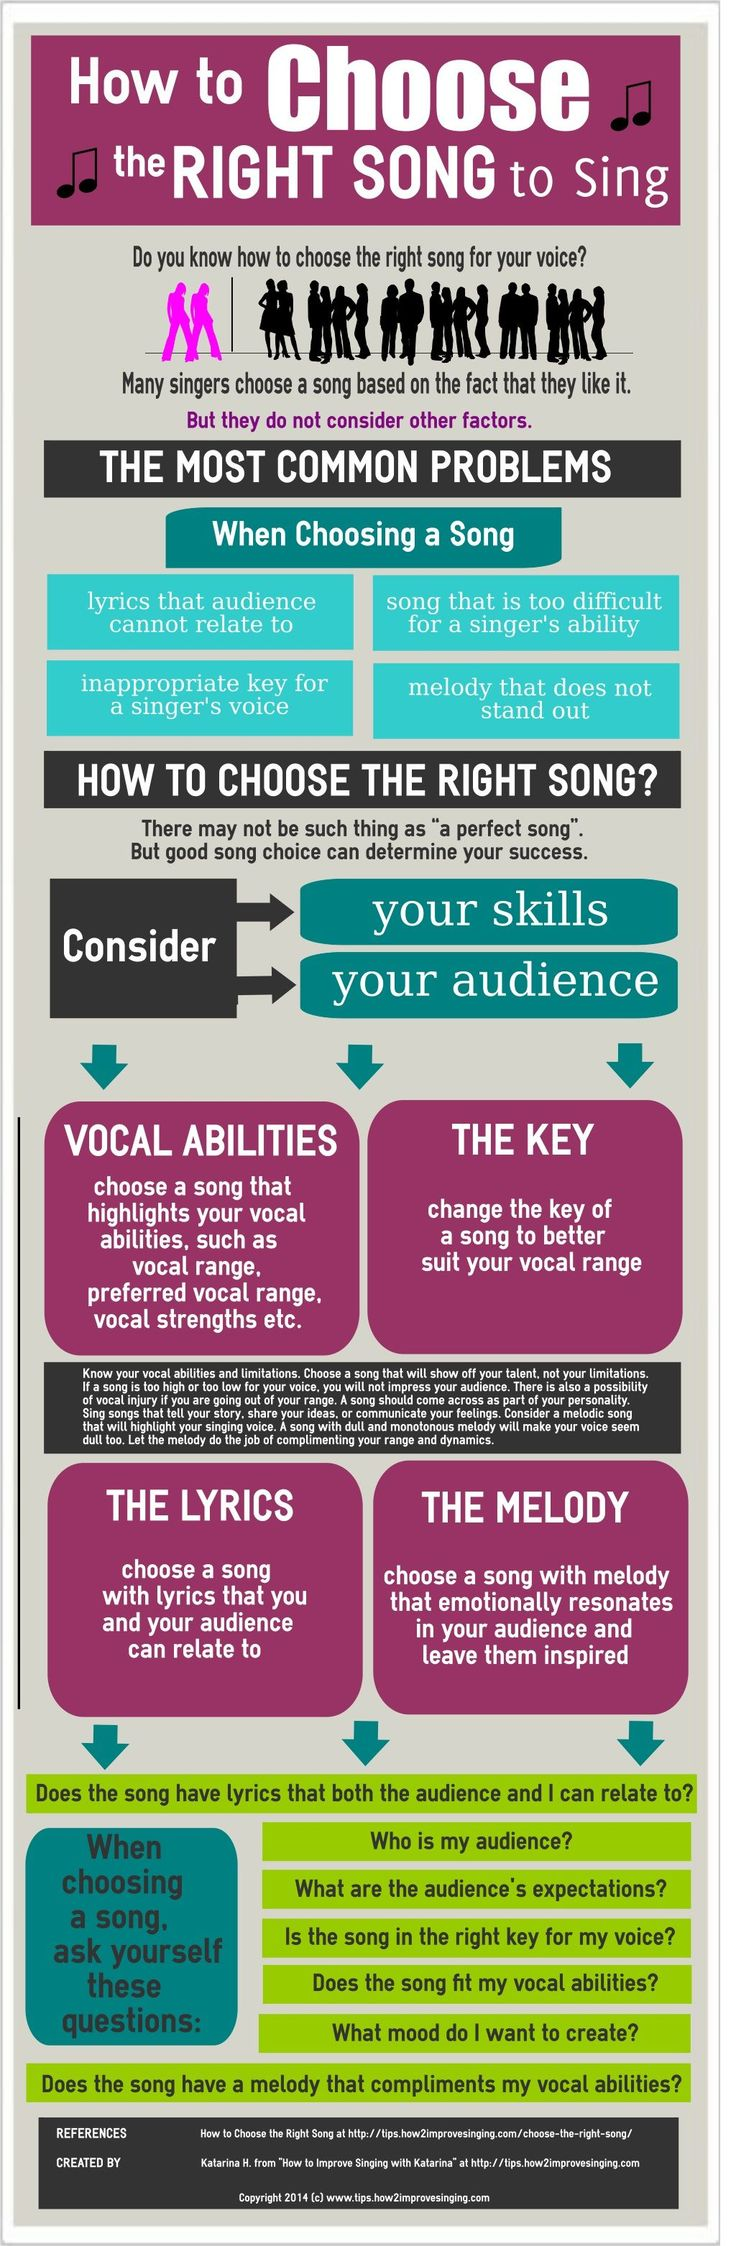 Behind the music: How to write a hit song